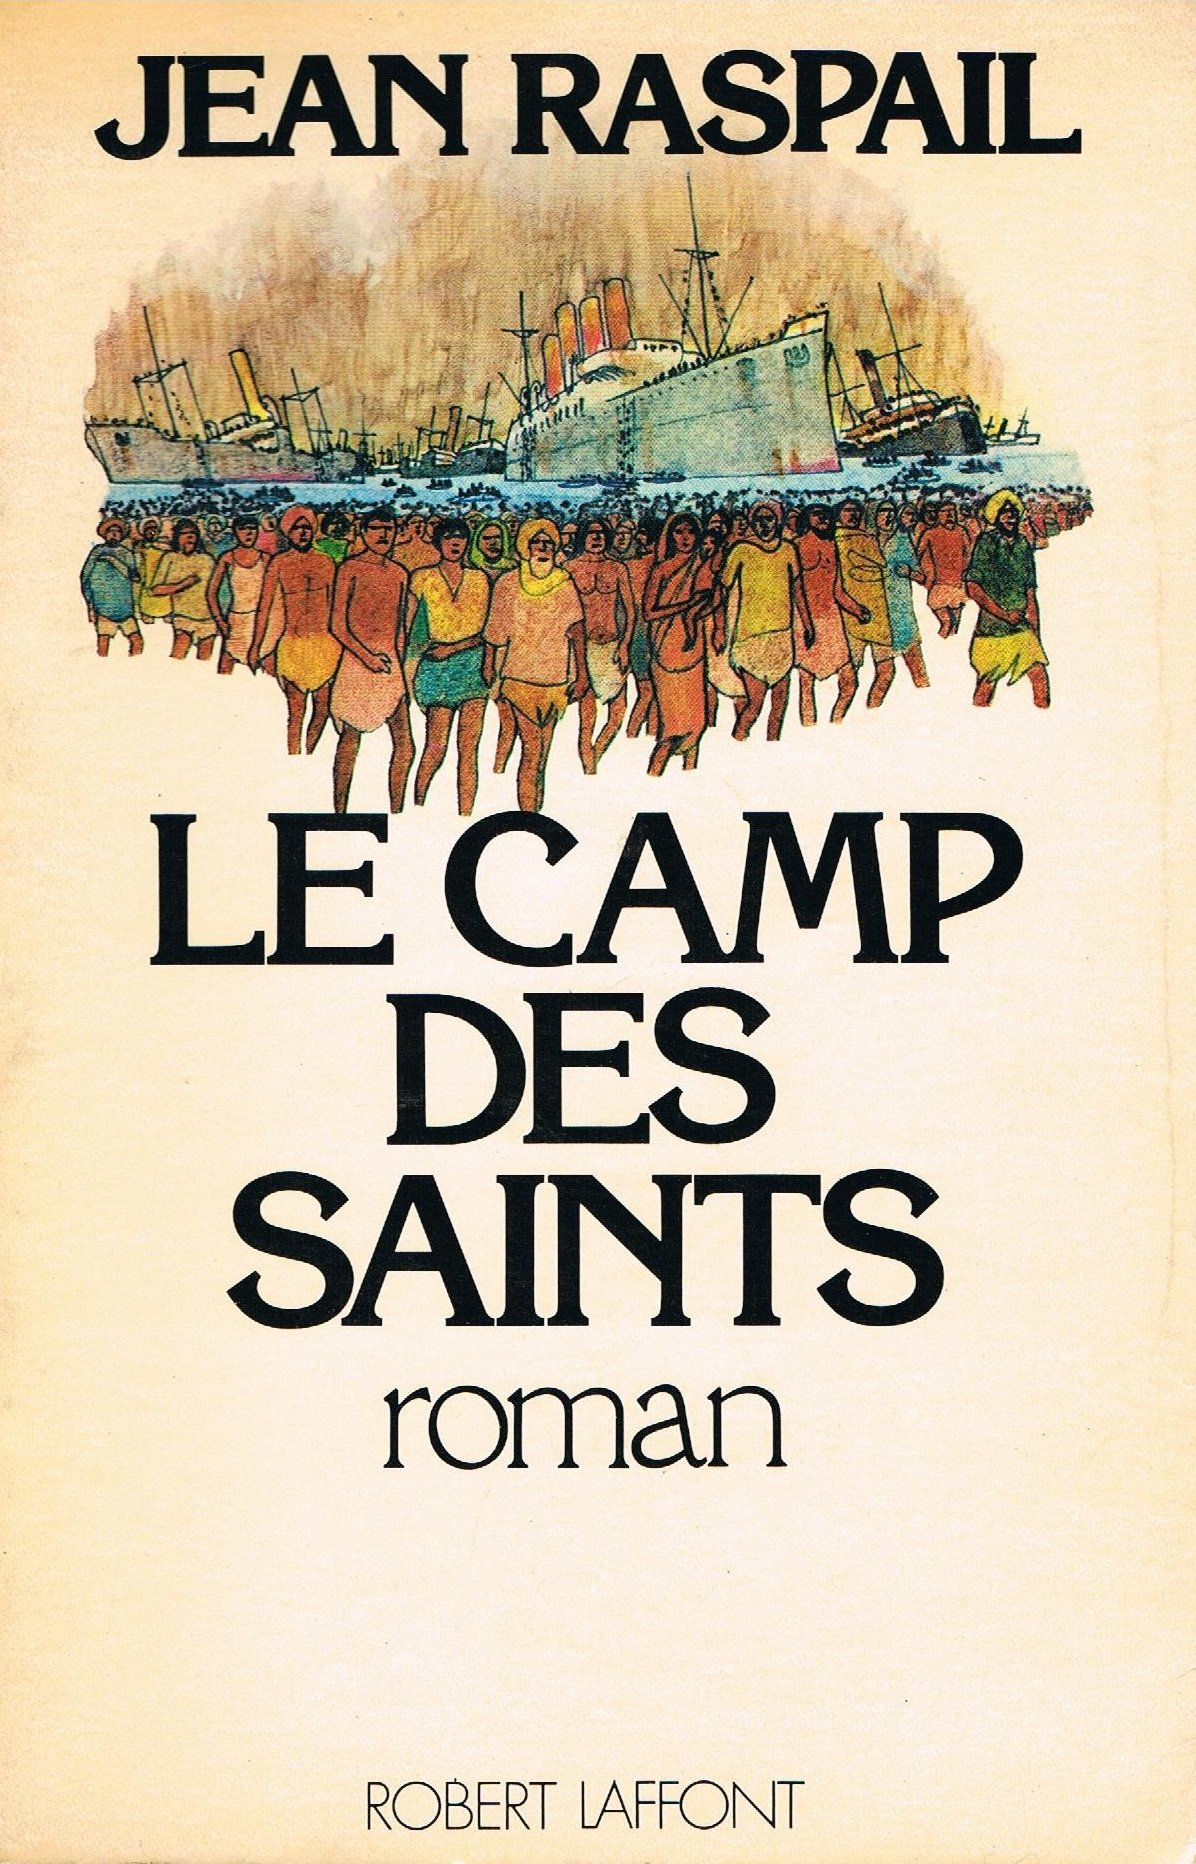 Amazon.fr - Le camp des saints - Jean RASPAIL - Livres